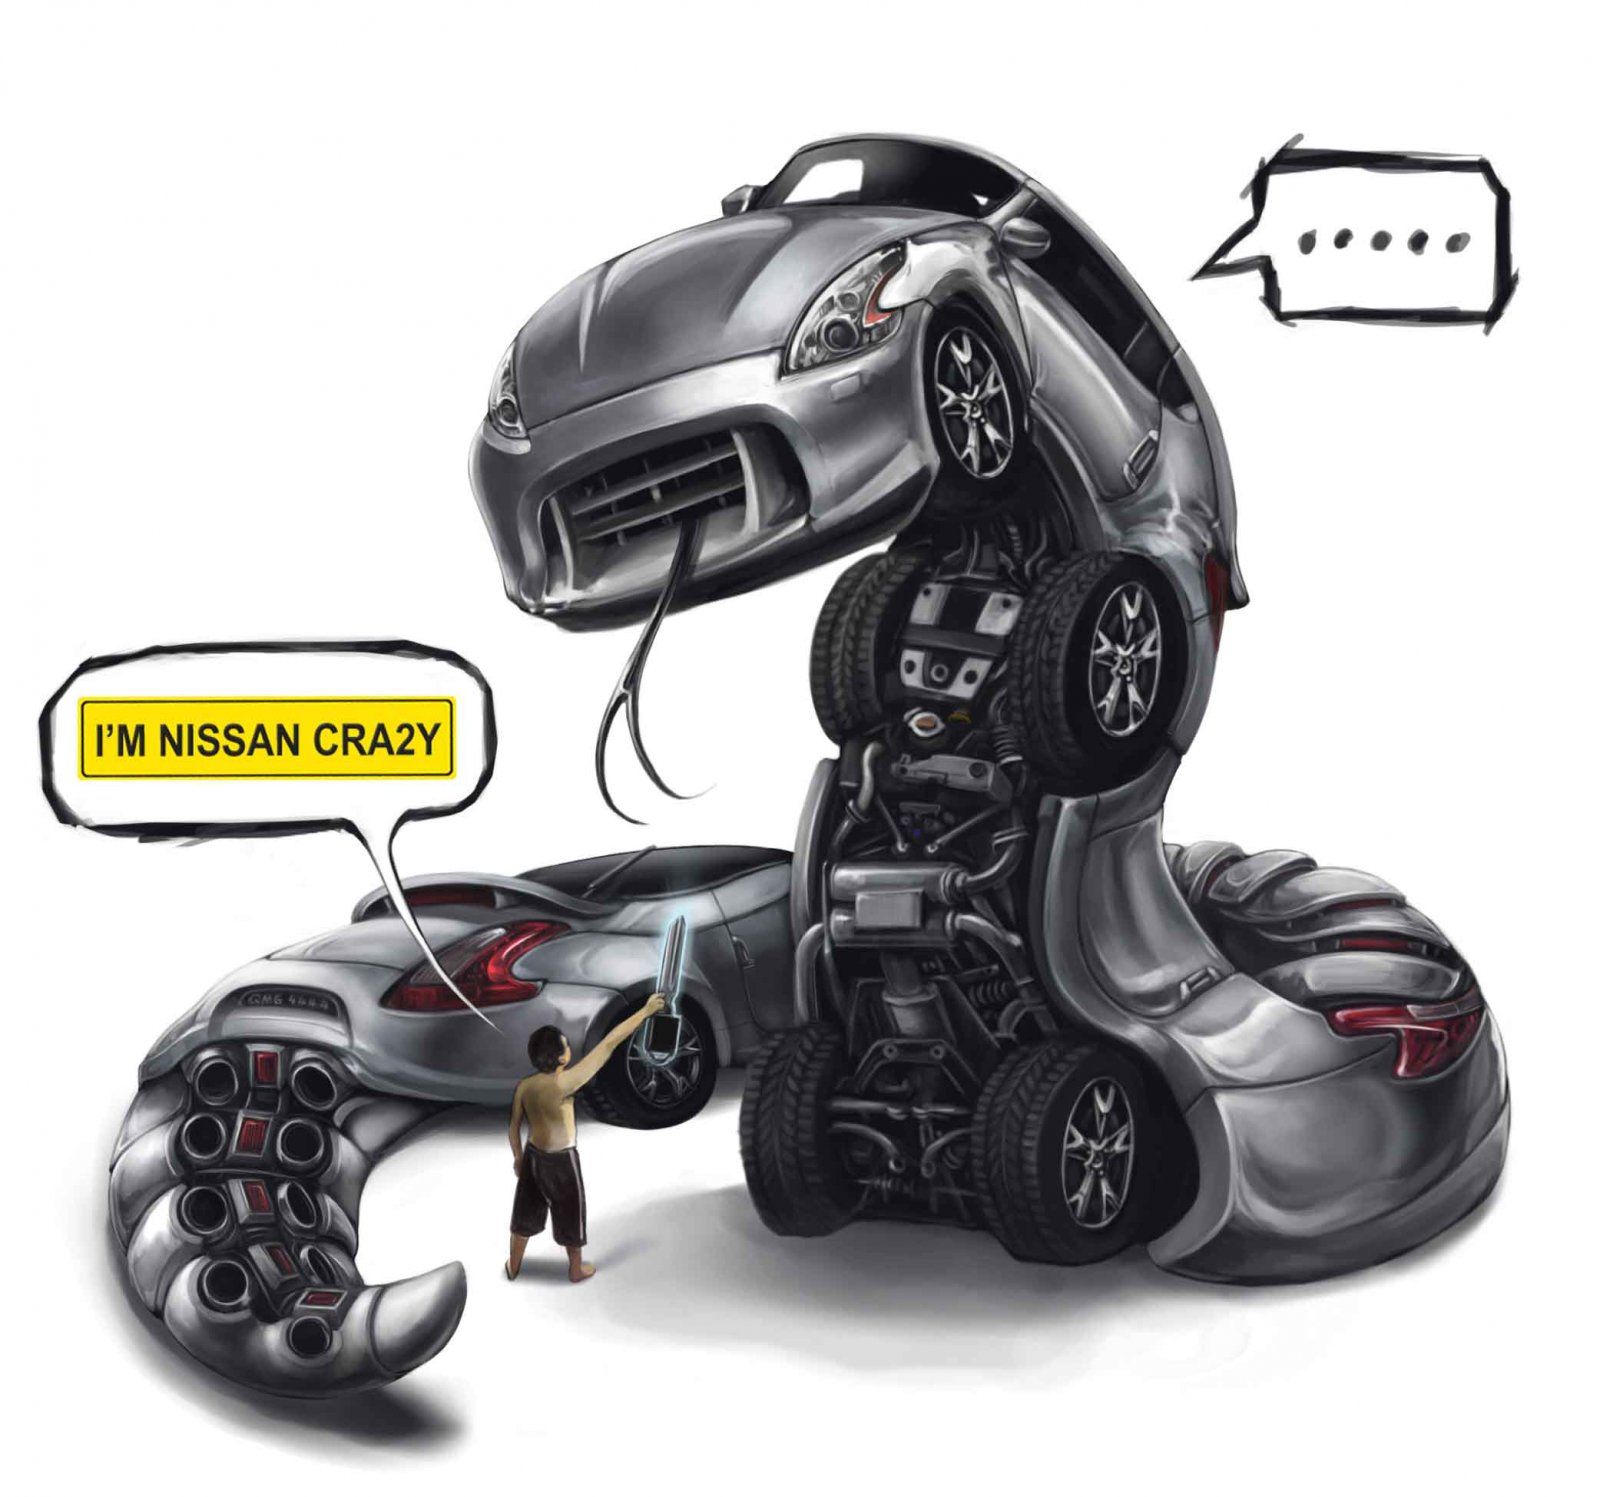 1600x1497_8341_Nissan_Car_toon_crazy_2d_fantasy_car_snake_picture_image_digital_art